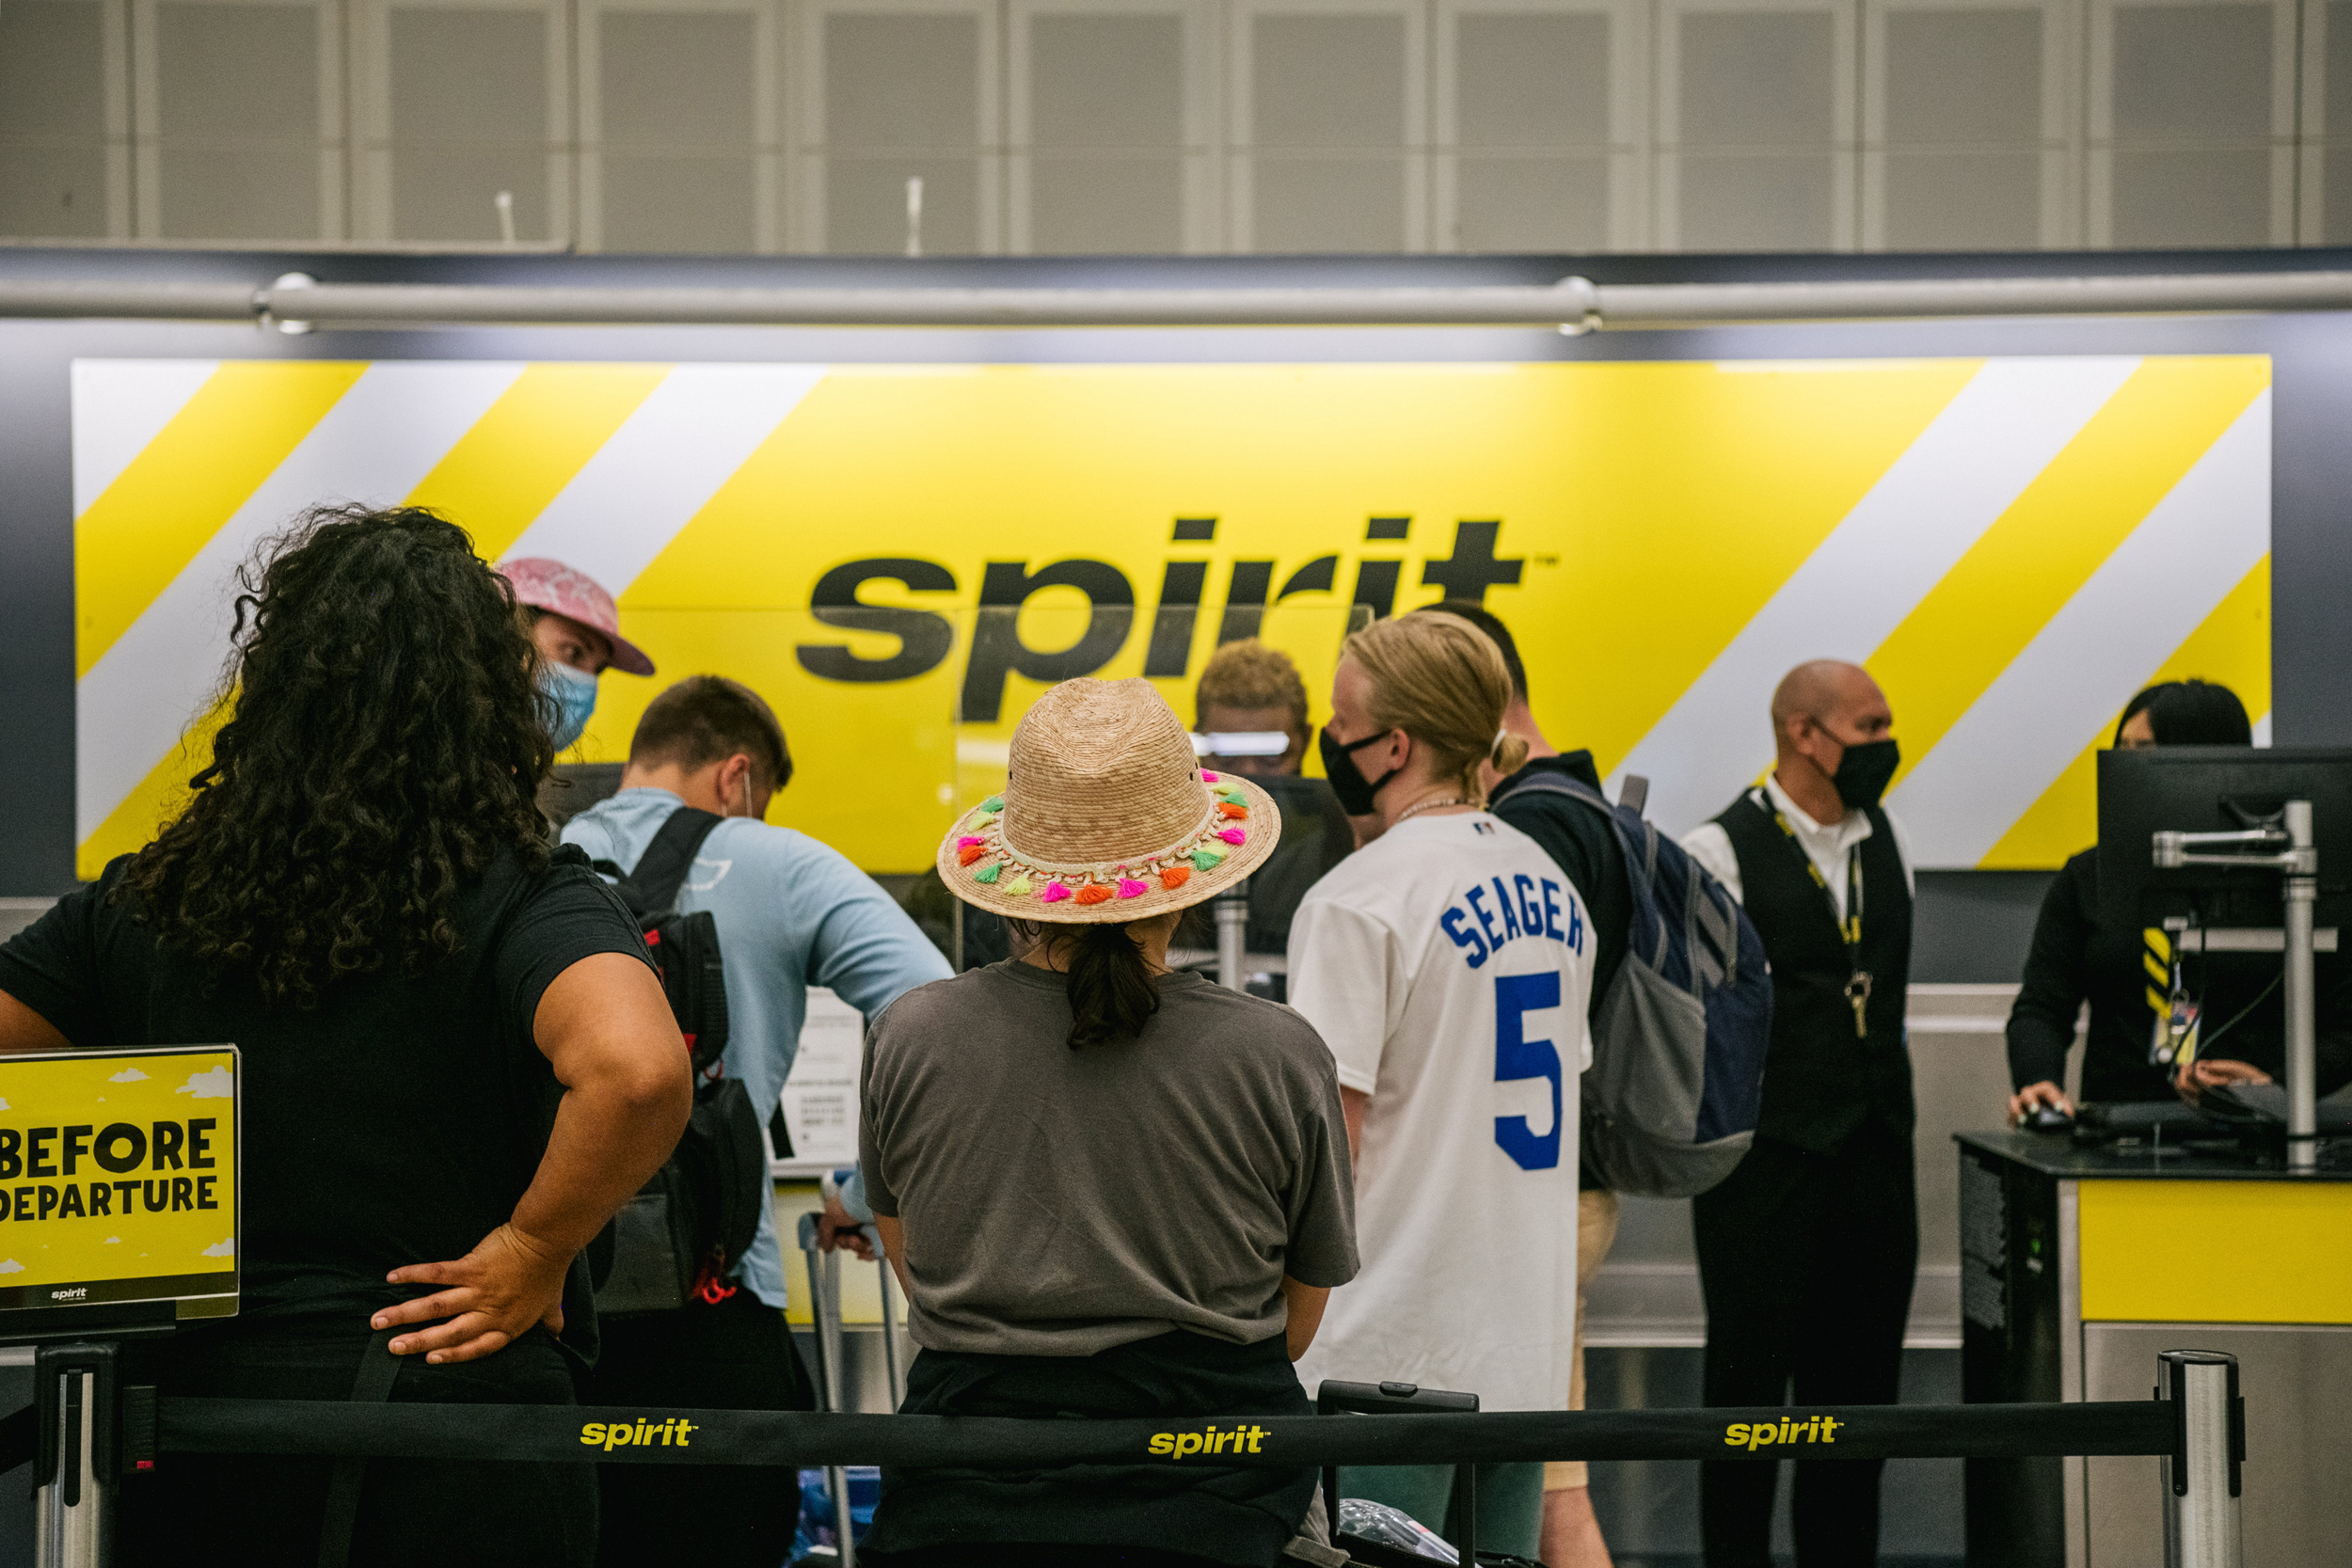 Spirit Airlines CEO explains what caused the carrier's meltdown